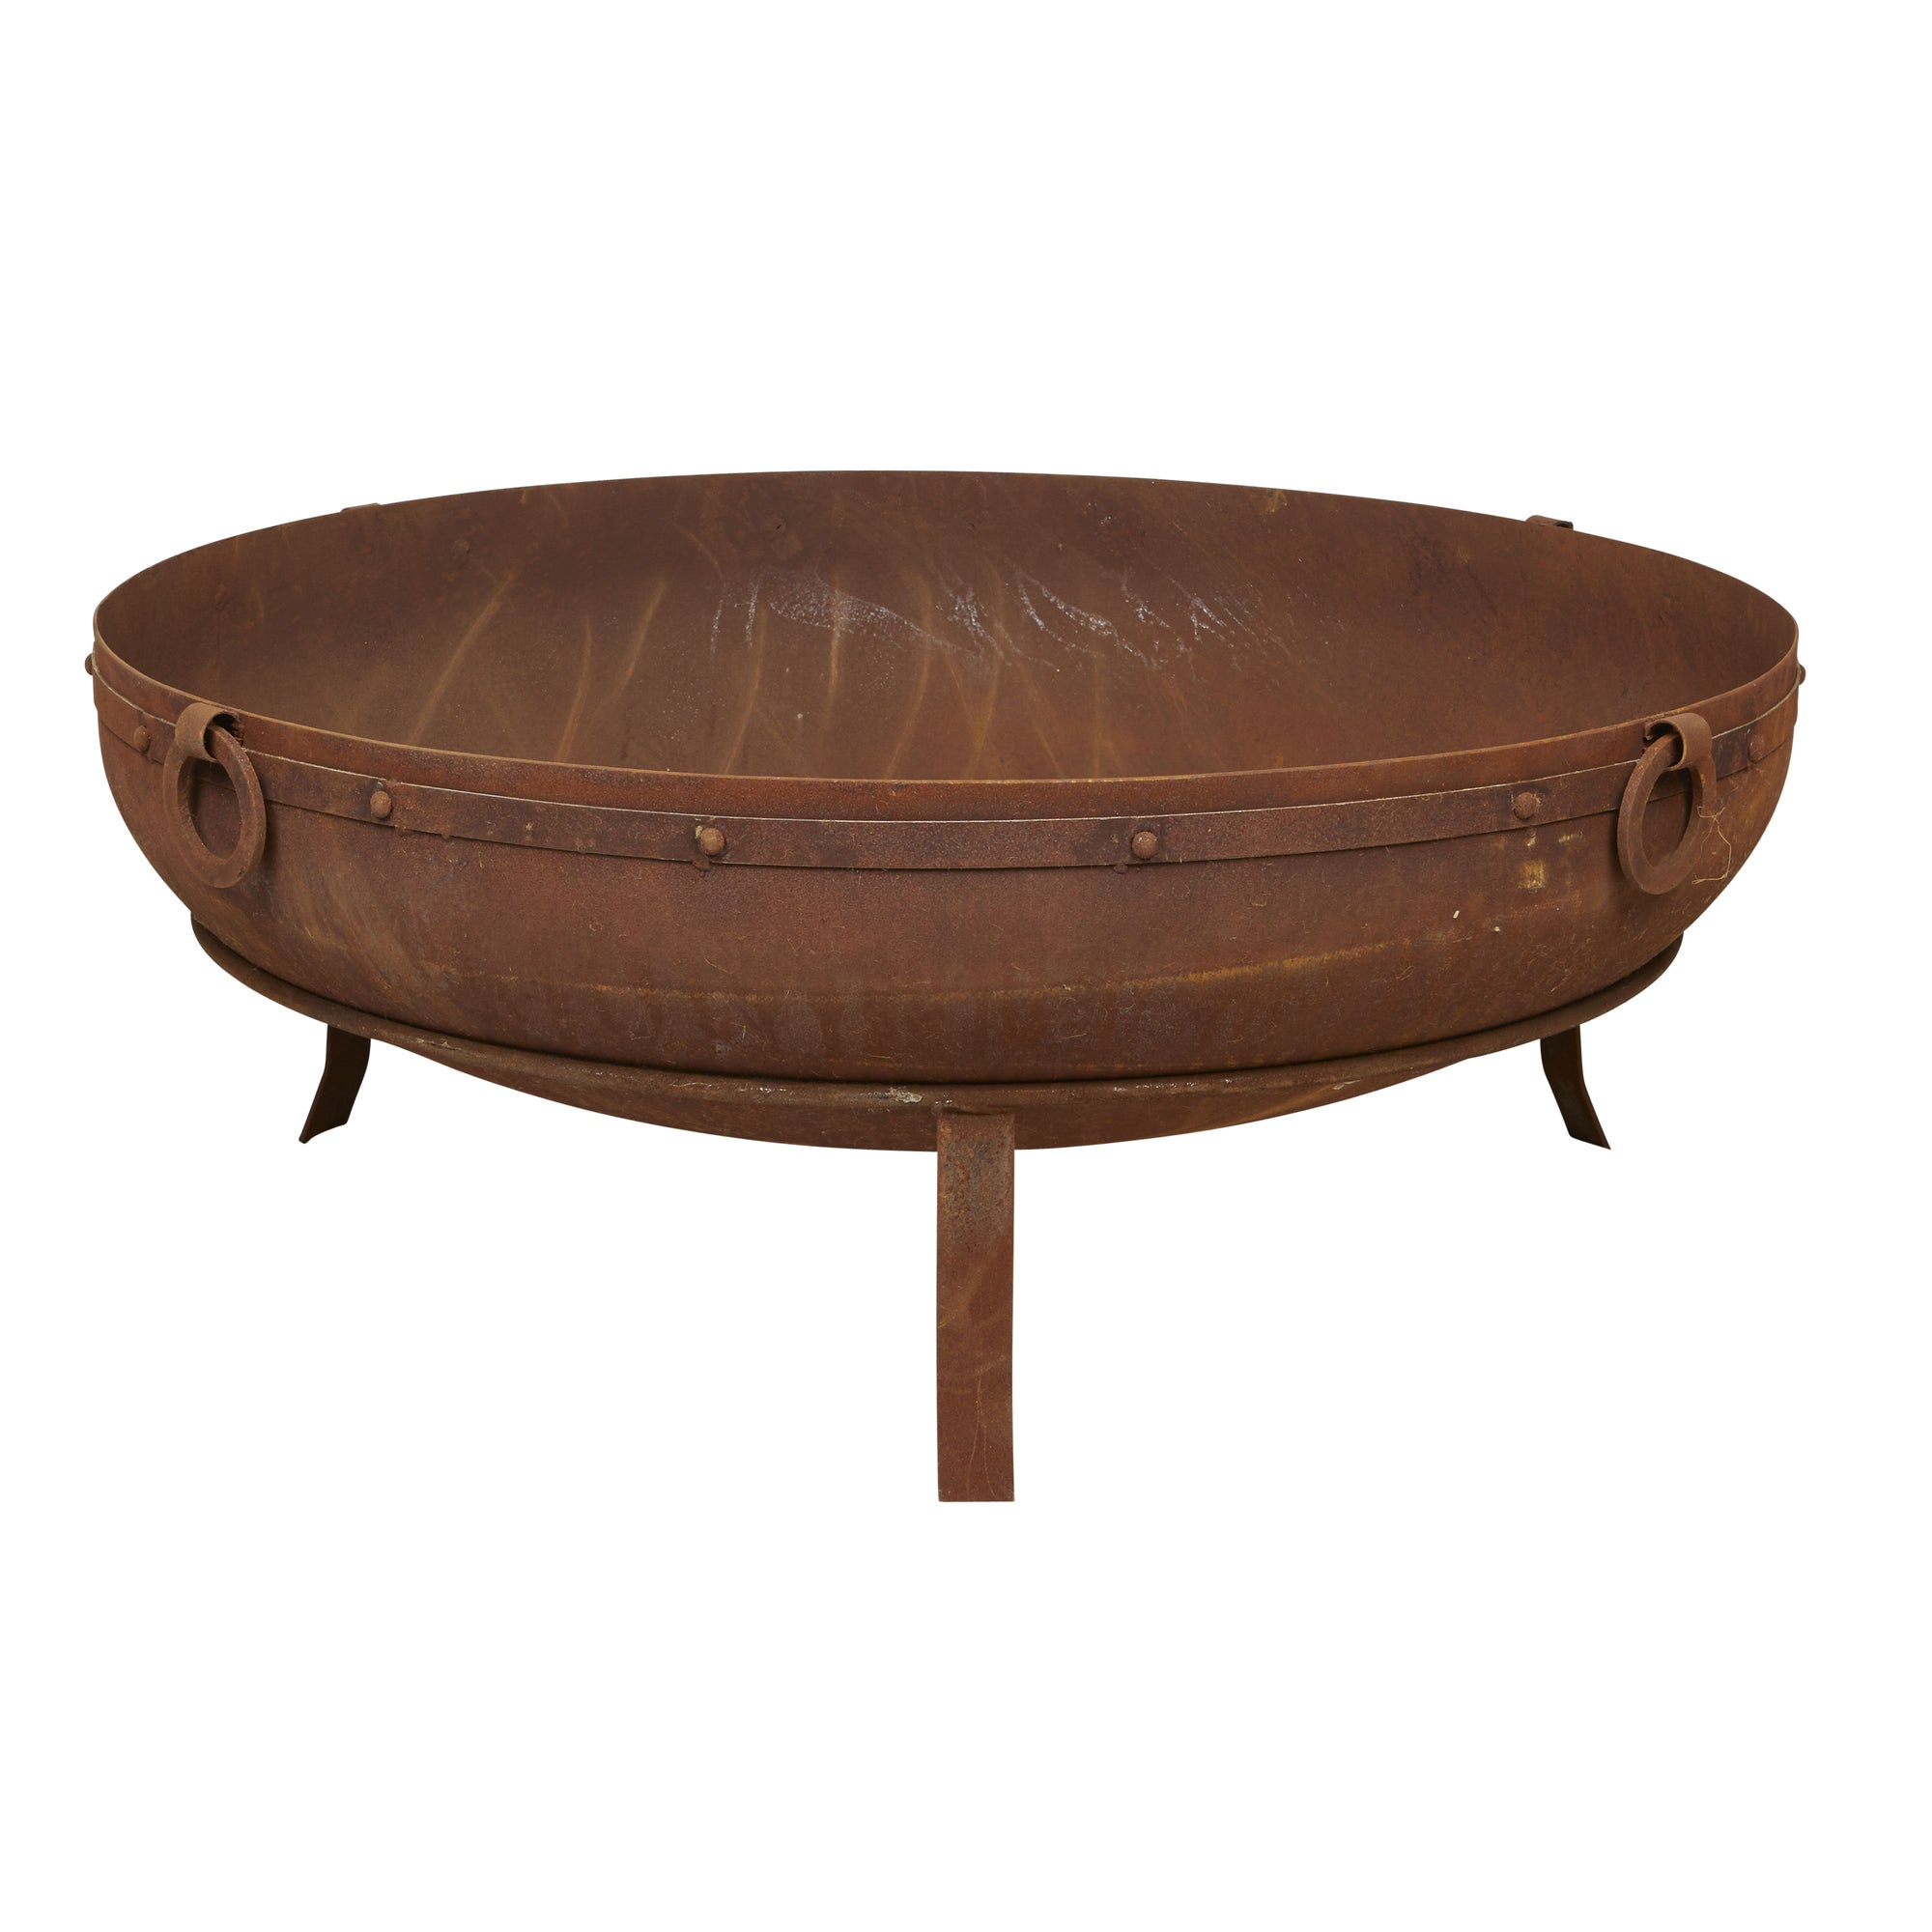 90cm Indian Kadai Replica Cauldron with Base - Outdoor Living Essentials